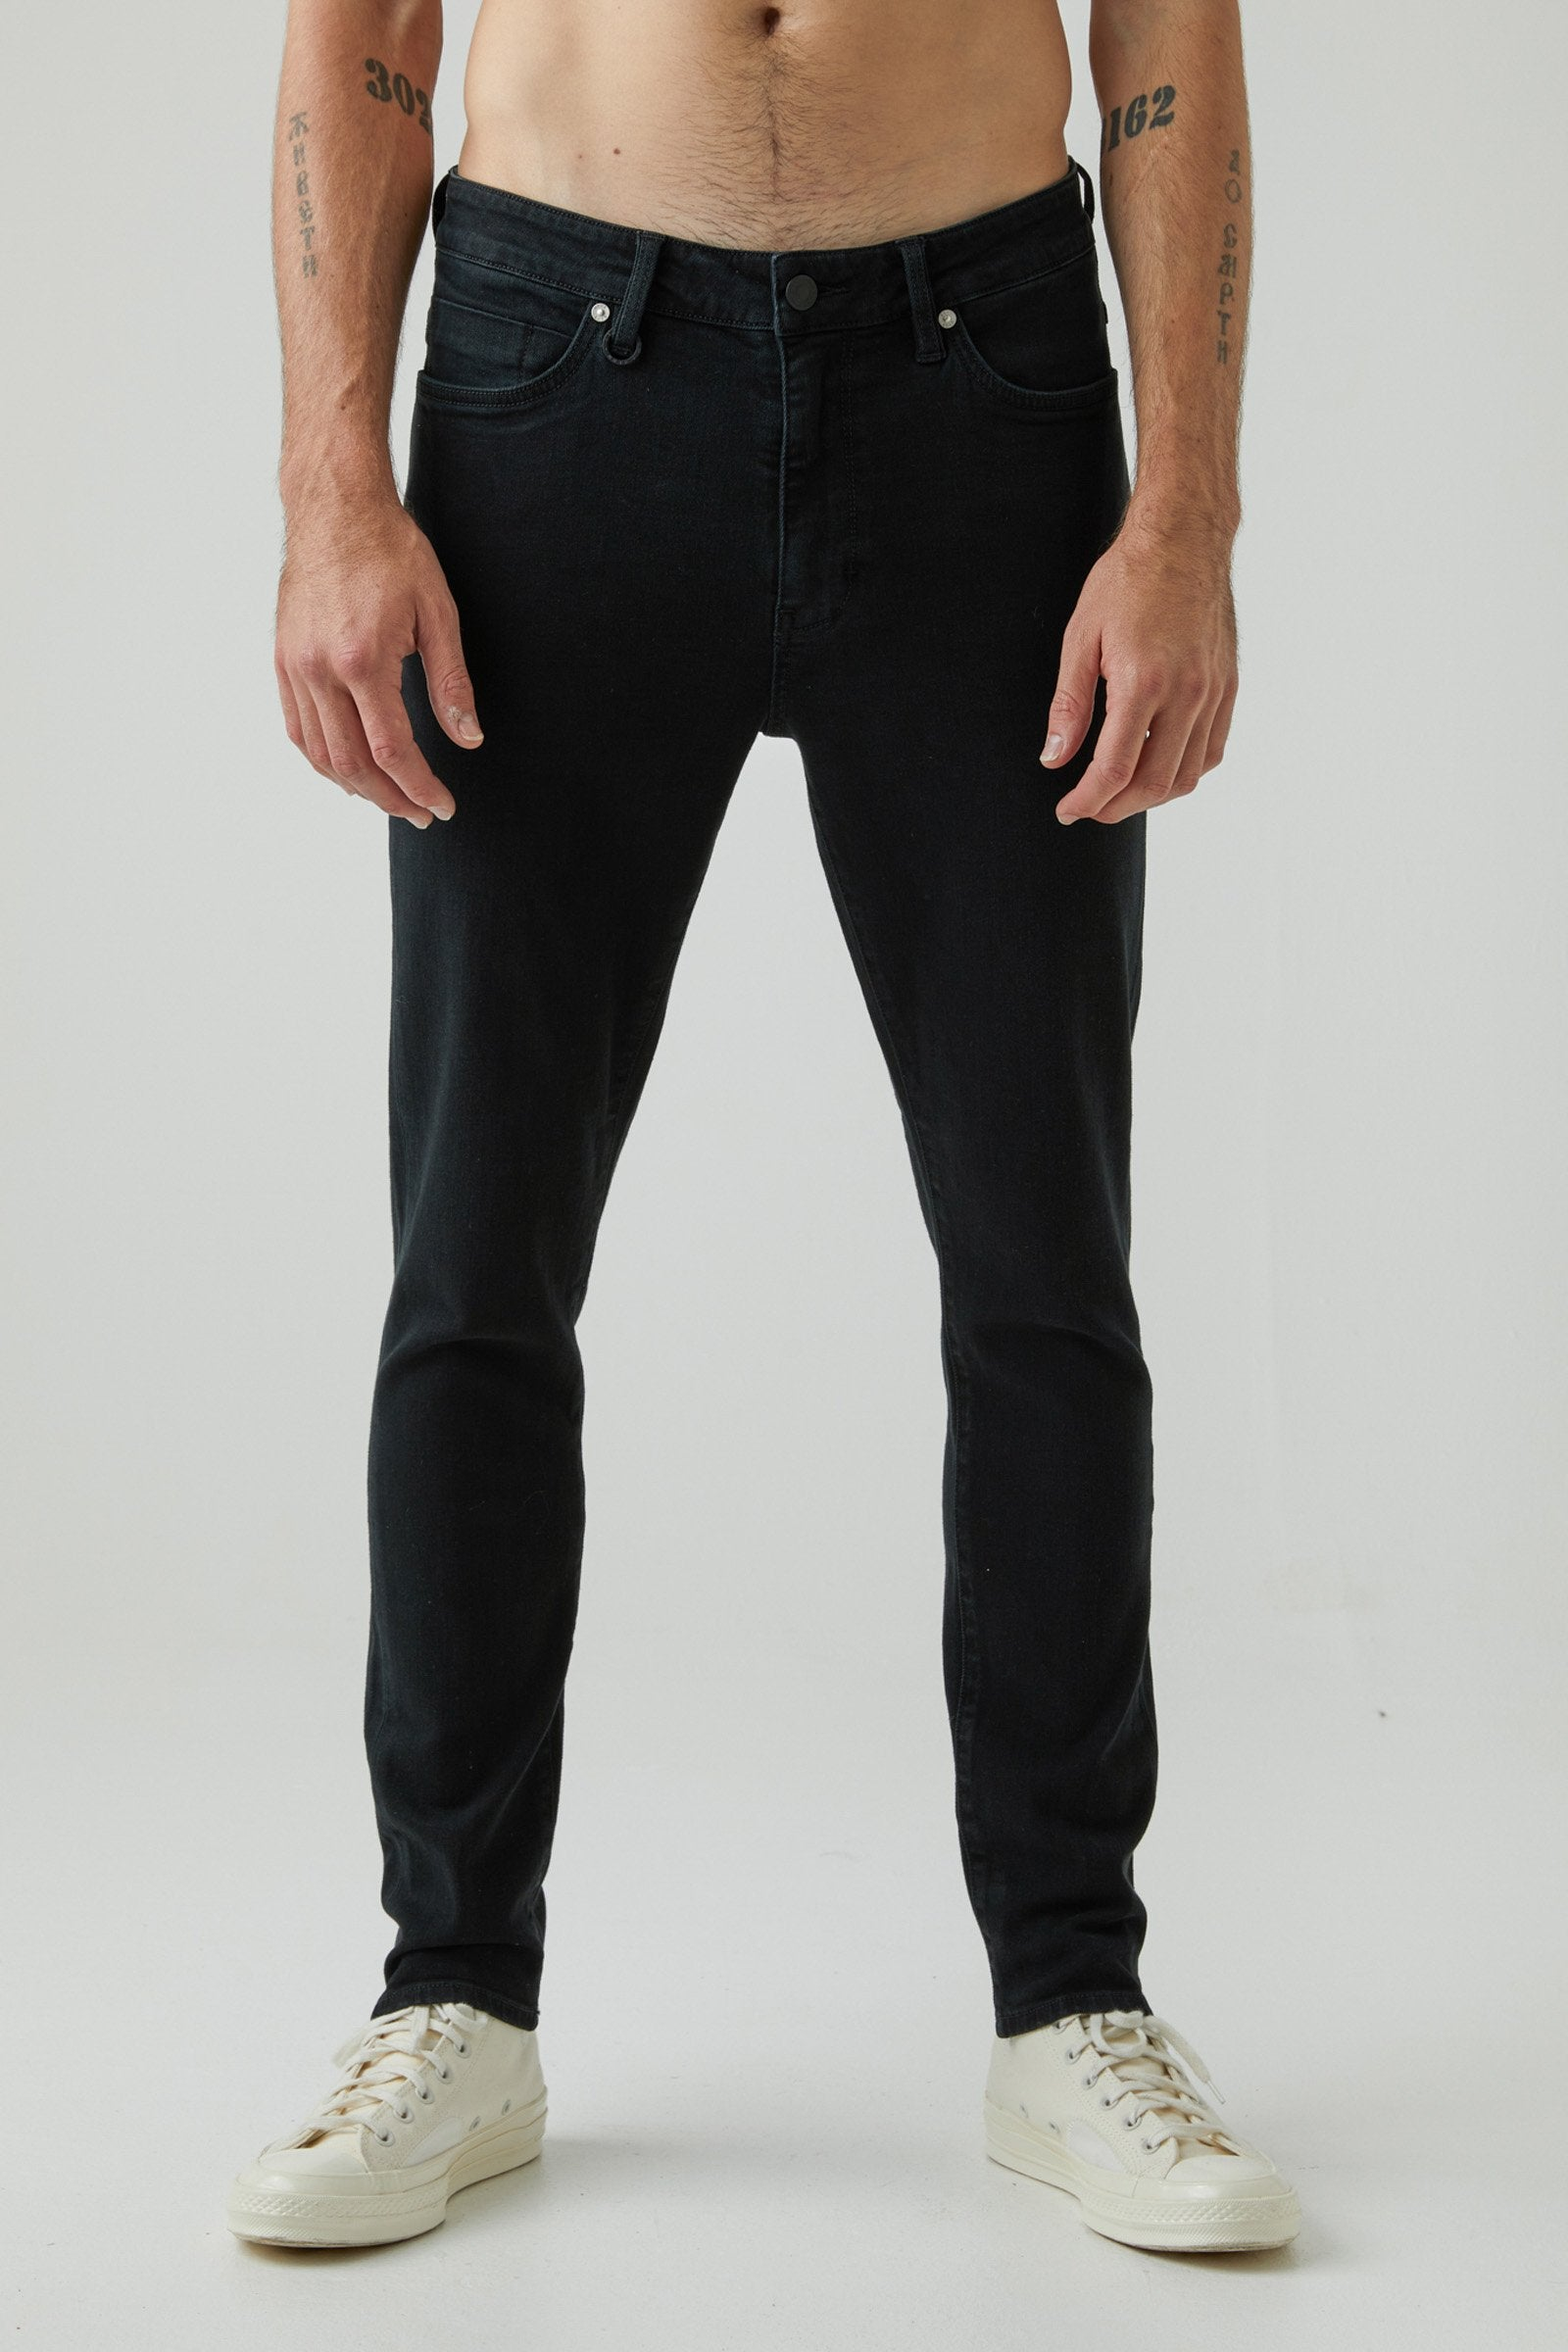 Rebel Skinny Eternal Black